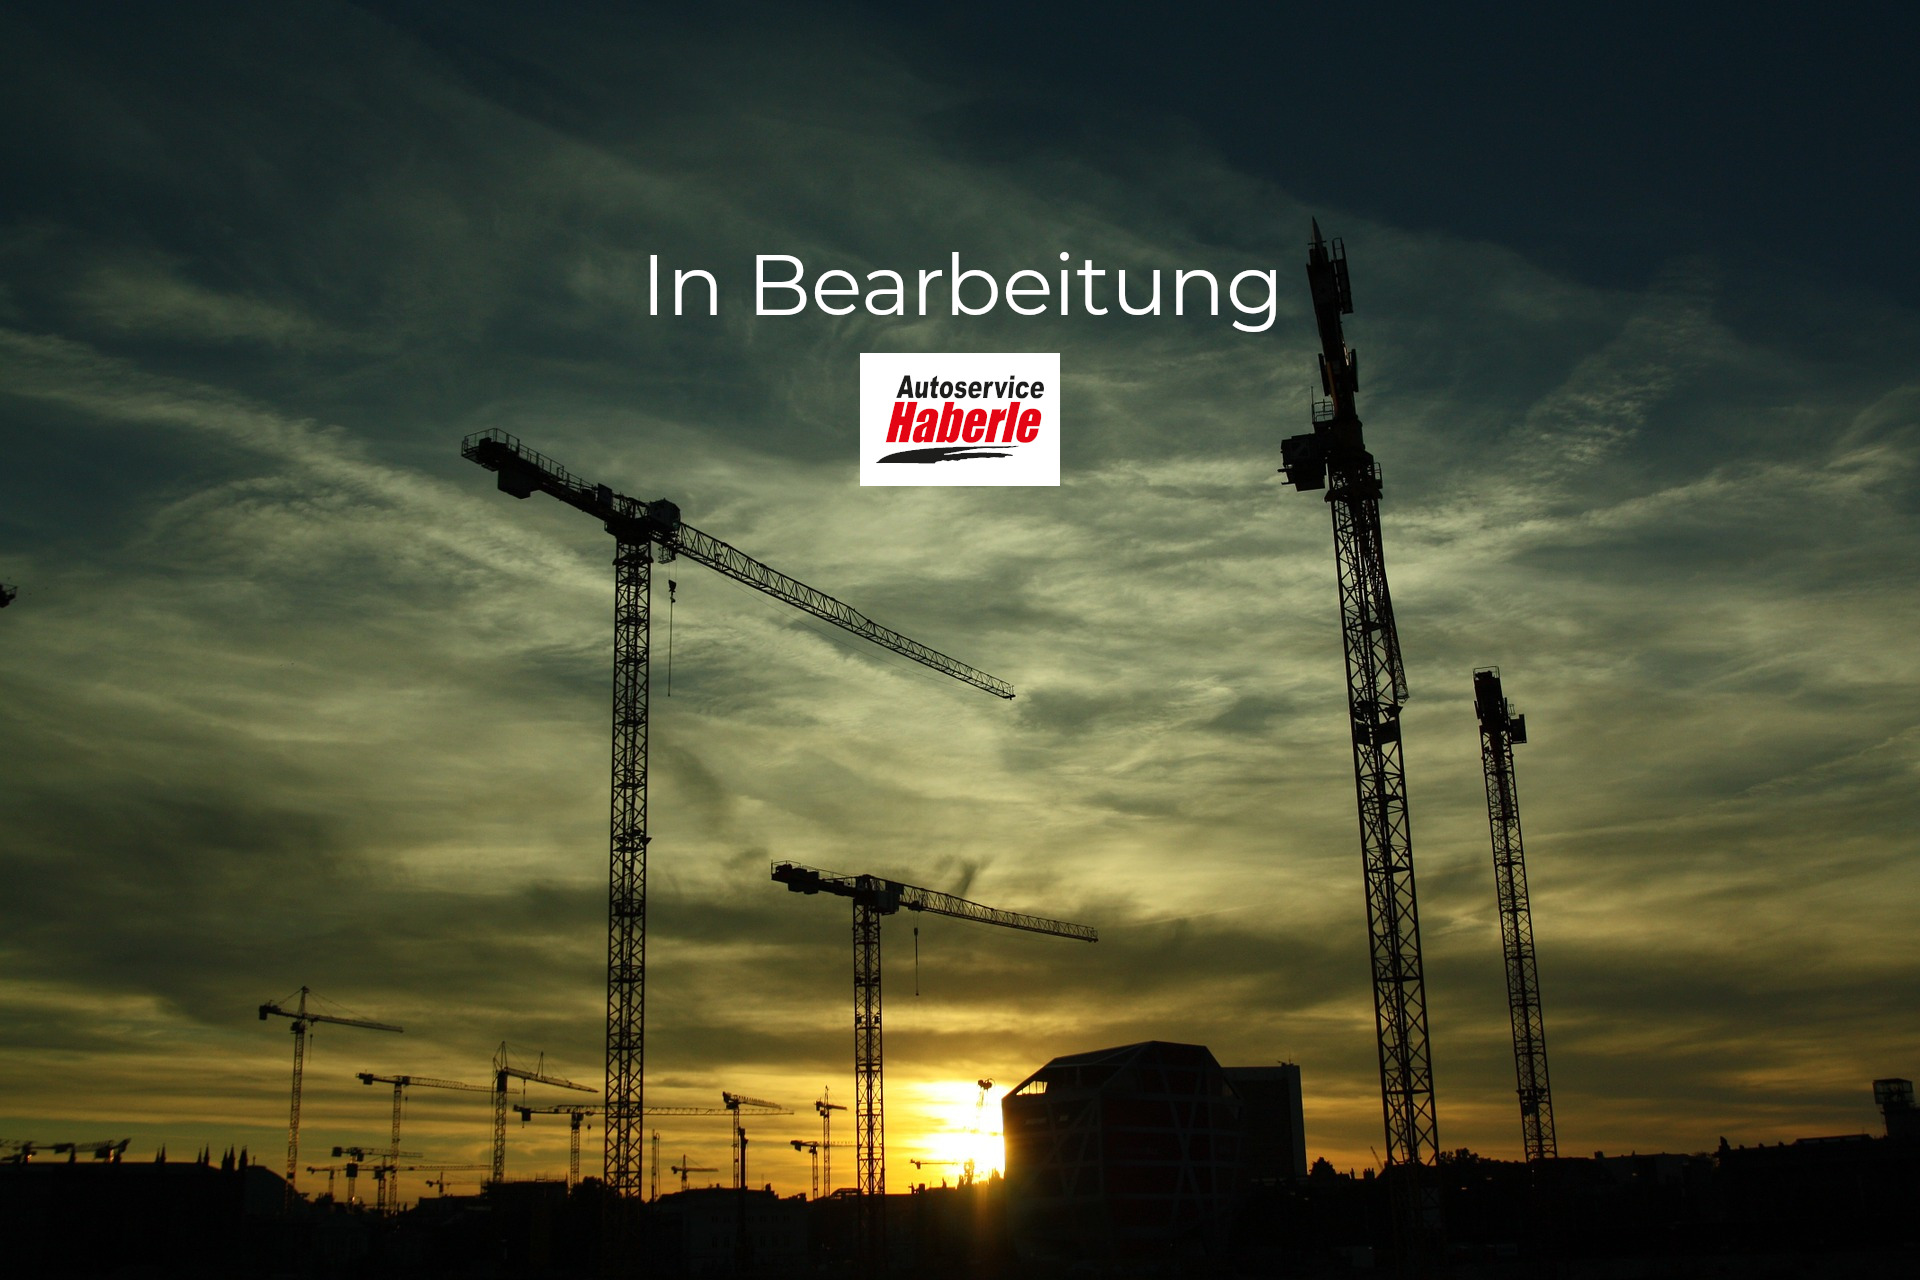 construction in Bearbeitung